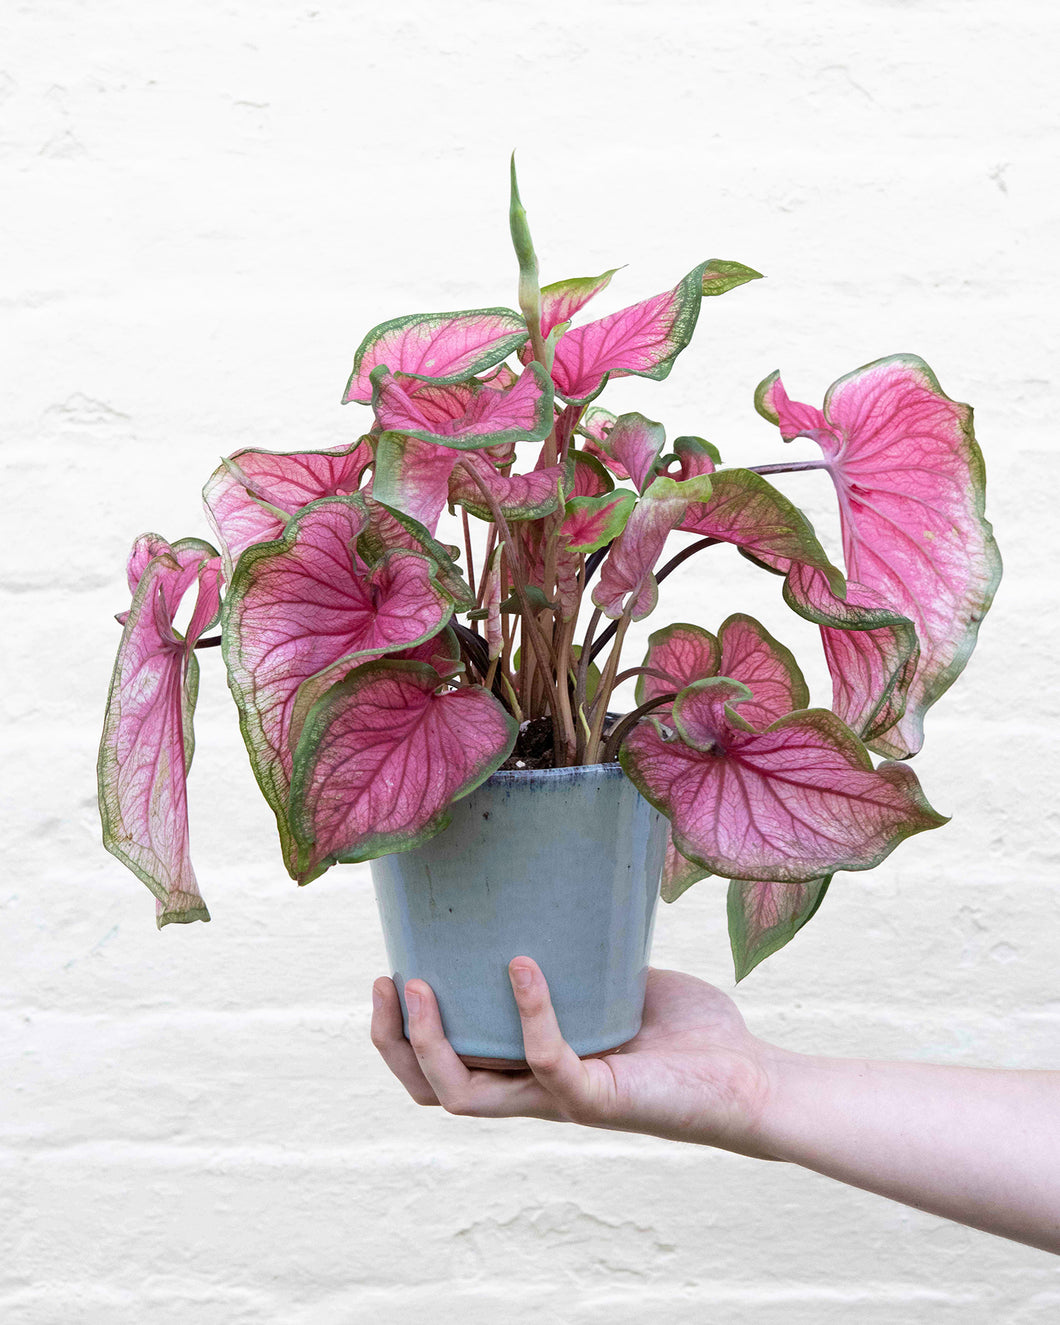 #03 Caladium Sweetheart